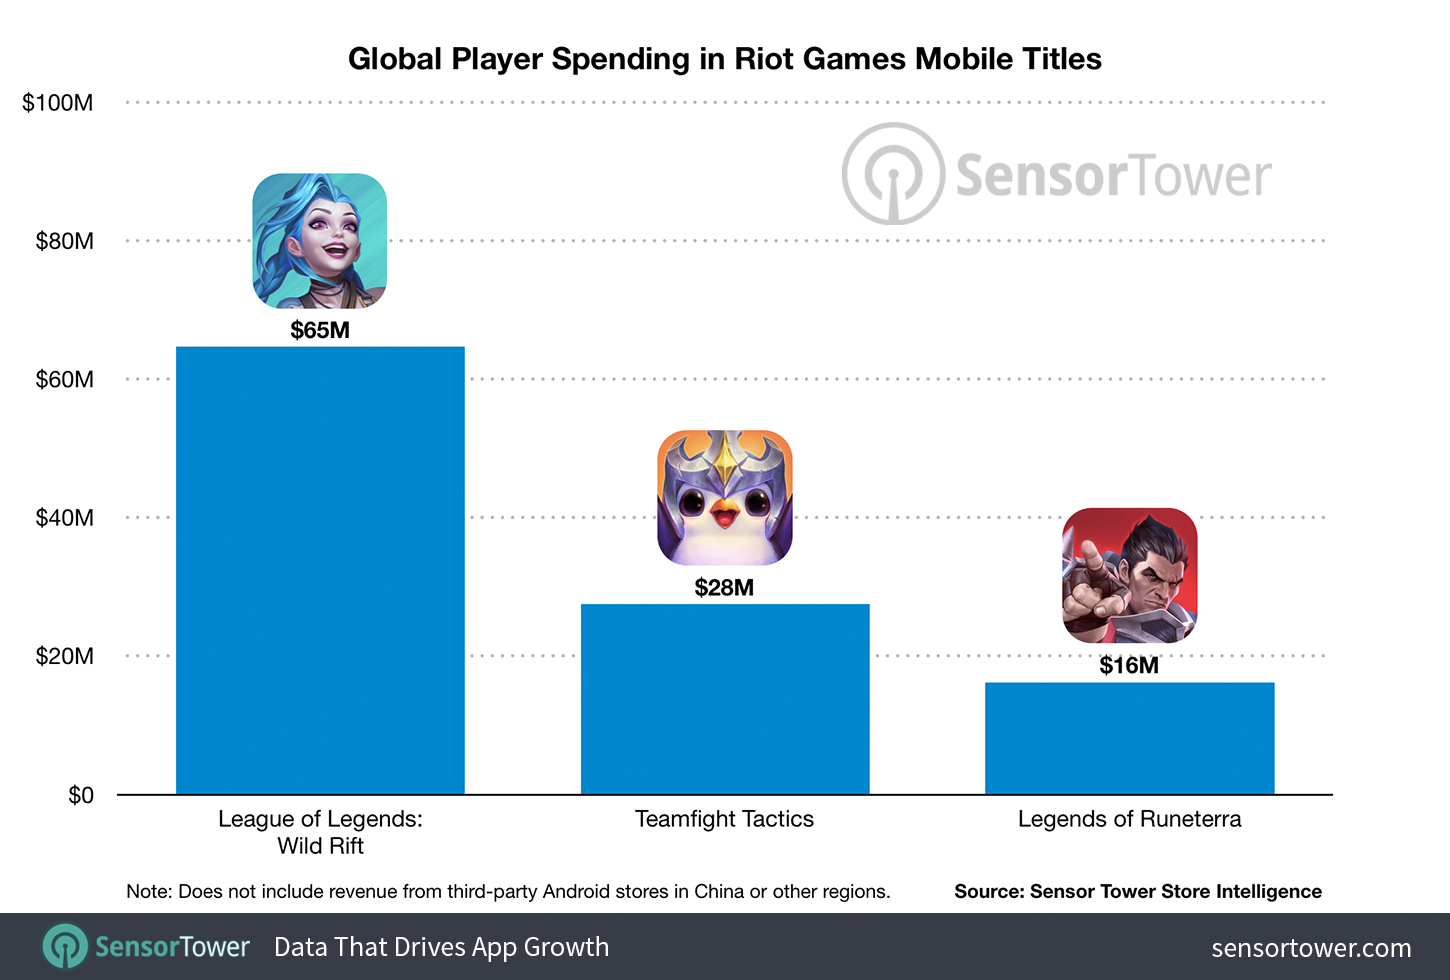 Global Player Spending in Riot Games Mobile Titles